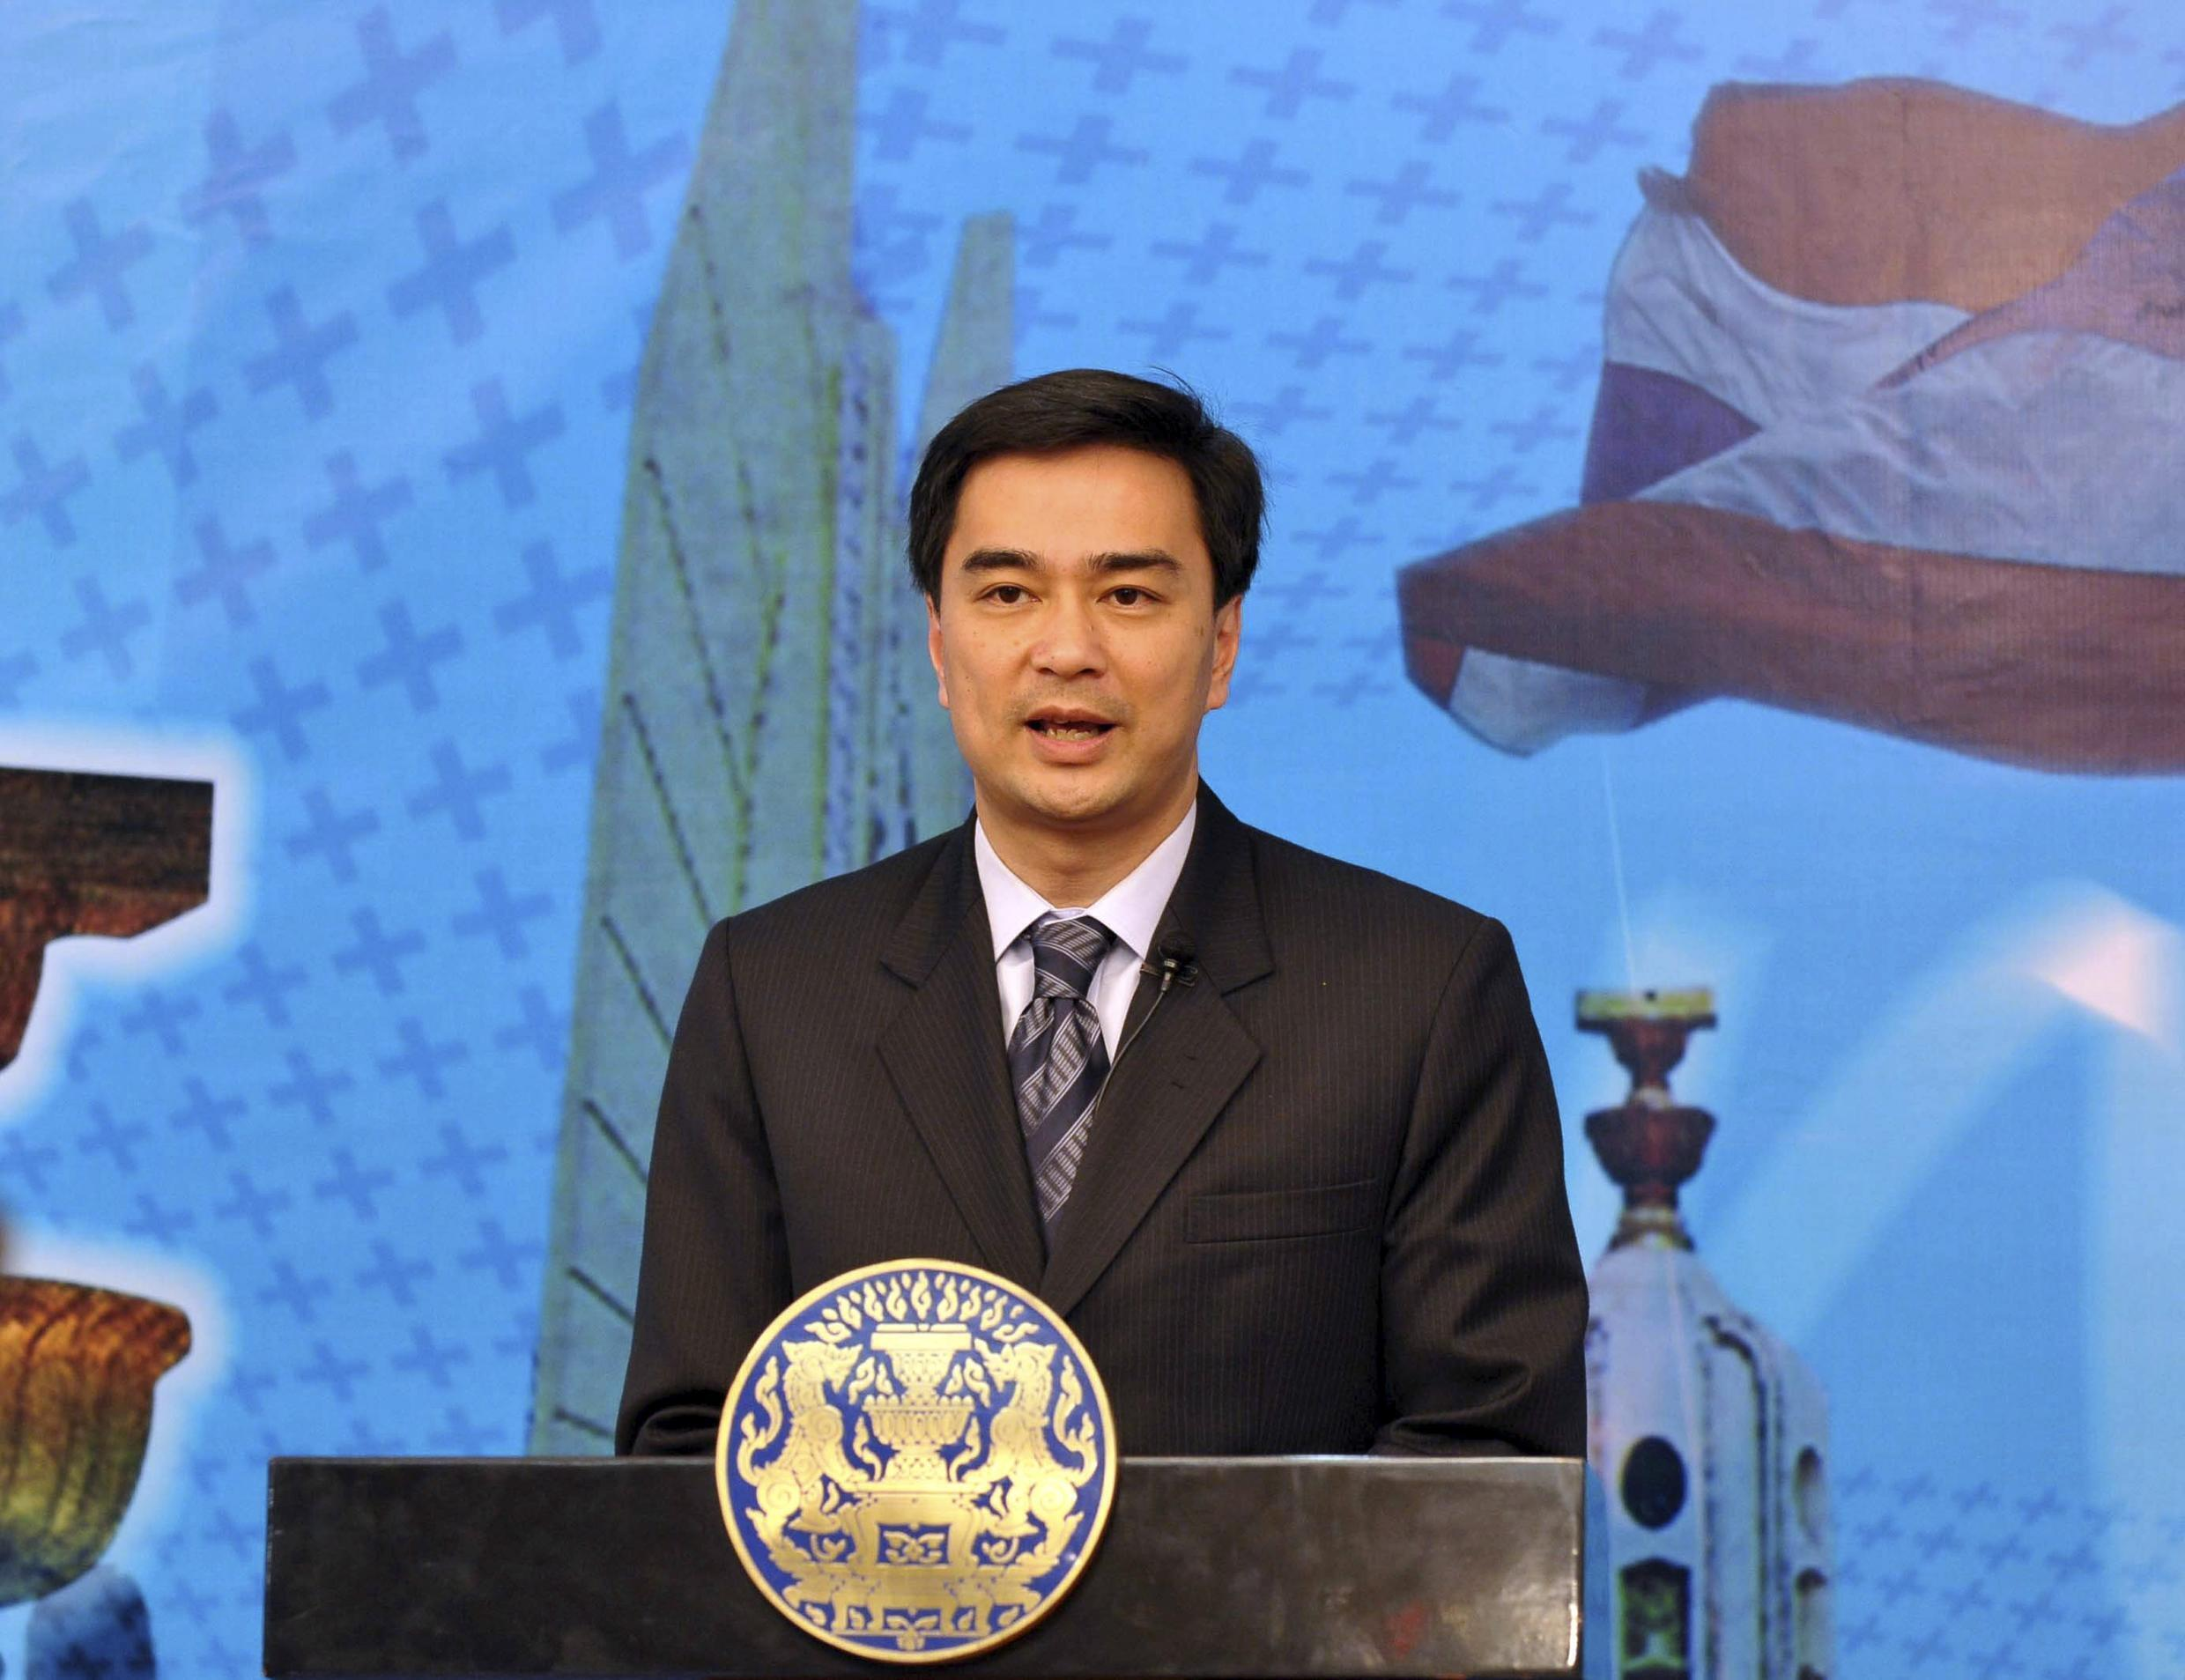 Thailand's Prime Minister Abhisit speaks at a news conference in Bangkok